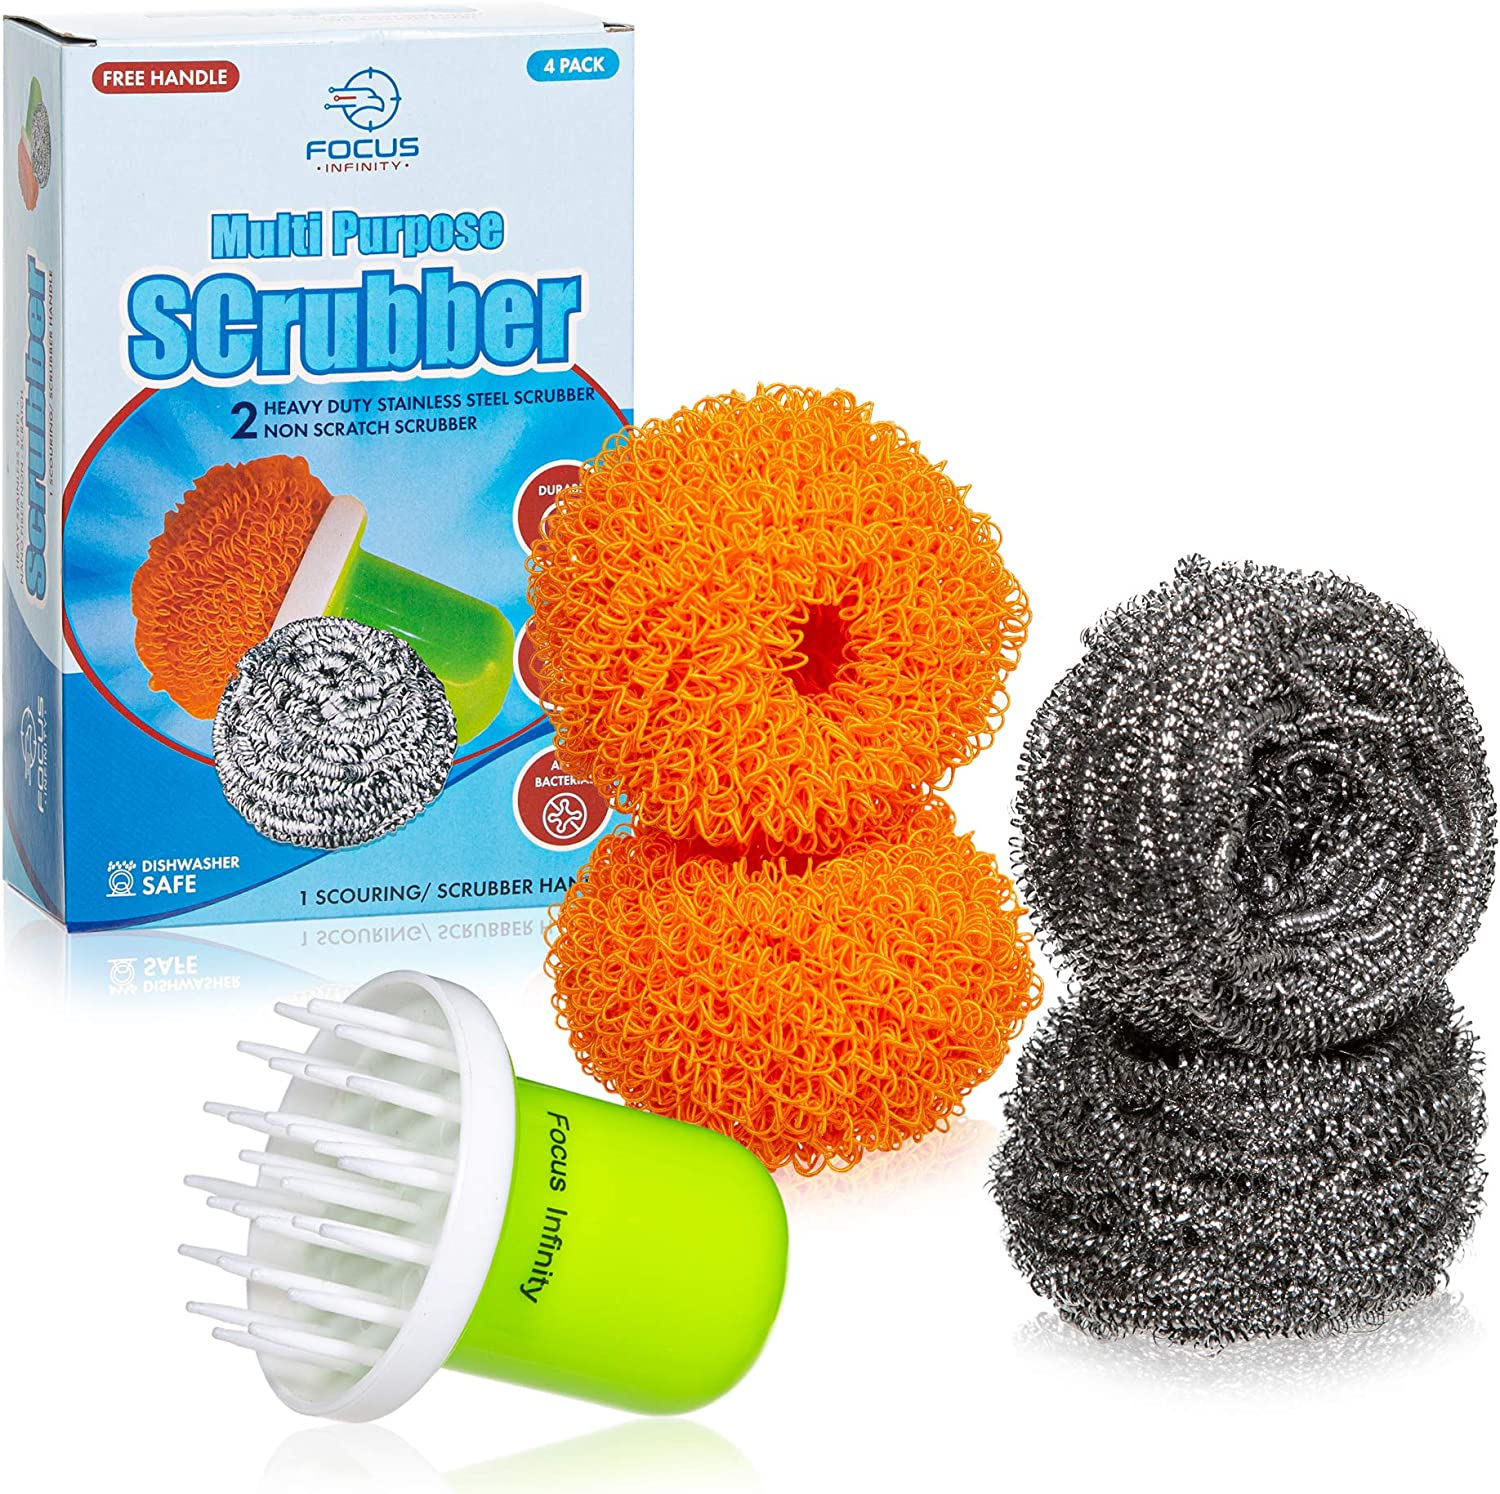 Multi Purpose Scrubber, Stainless Steel Wool Scourer and Non Scratch Dish sponges for Household, Kitchen, Bathroom and Auto (4 Packs)